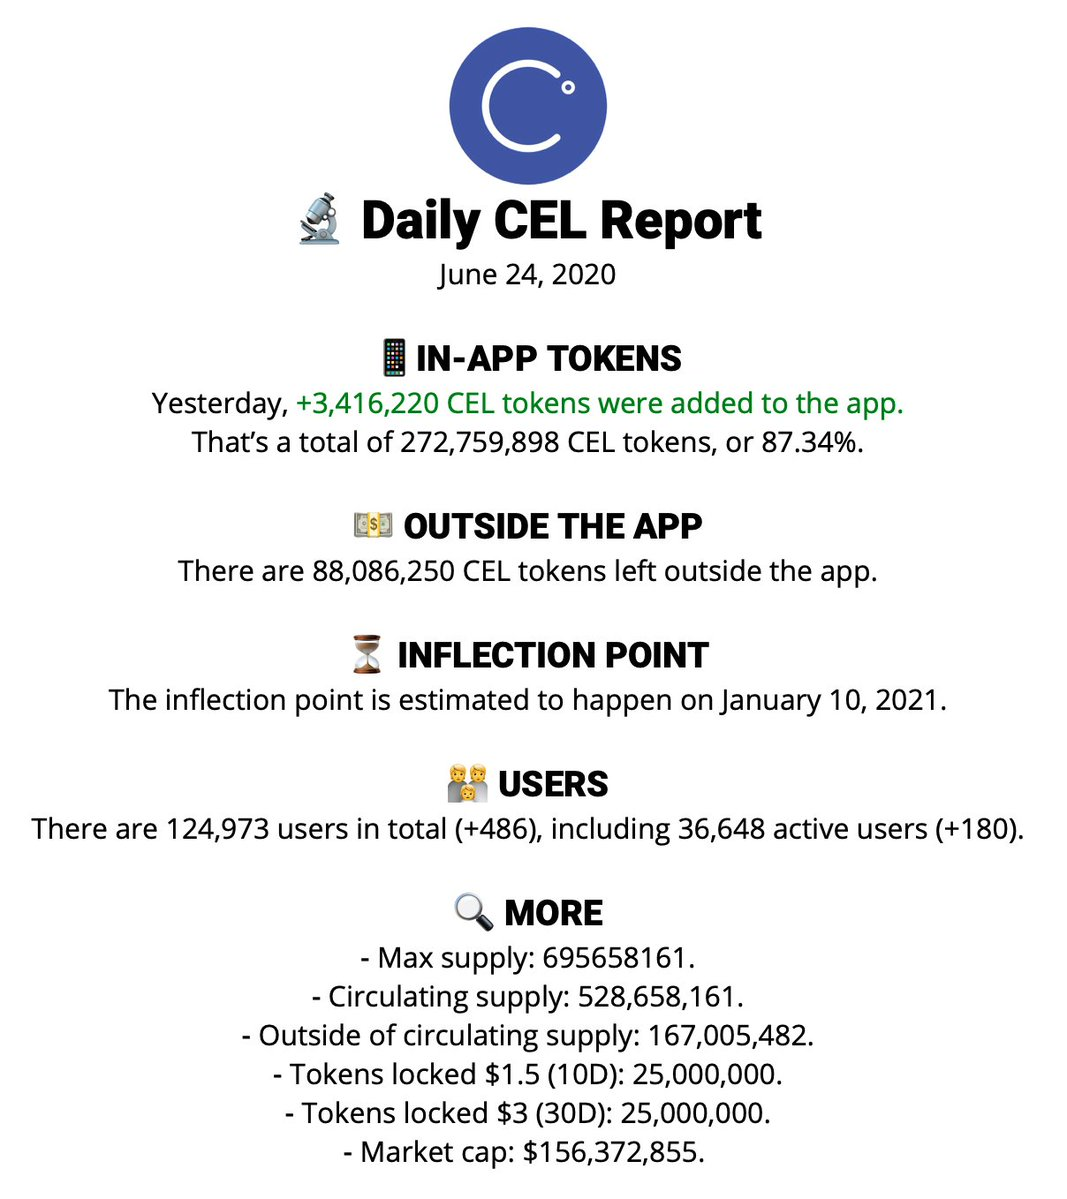 .@CelsiusNetwork has just reached the huge milestone! 87% of all $CEL tokens in the circulation are held in the Celsius app! Imagine how many $CEL tokens is their team forced to buy from the exchanges to pay out the interest on our Celsius tokens. 😱 This is mega bullish.